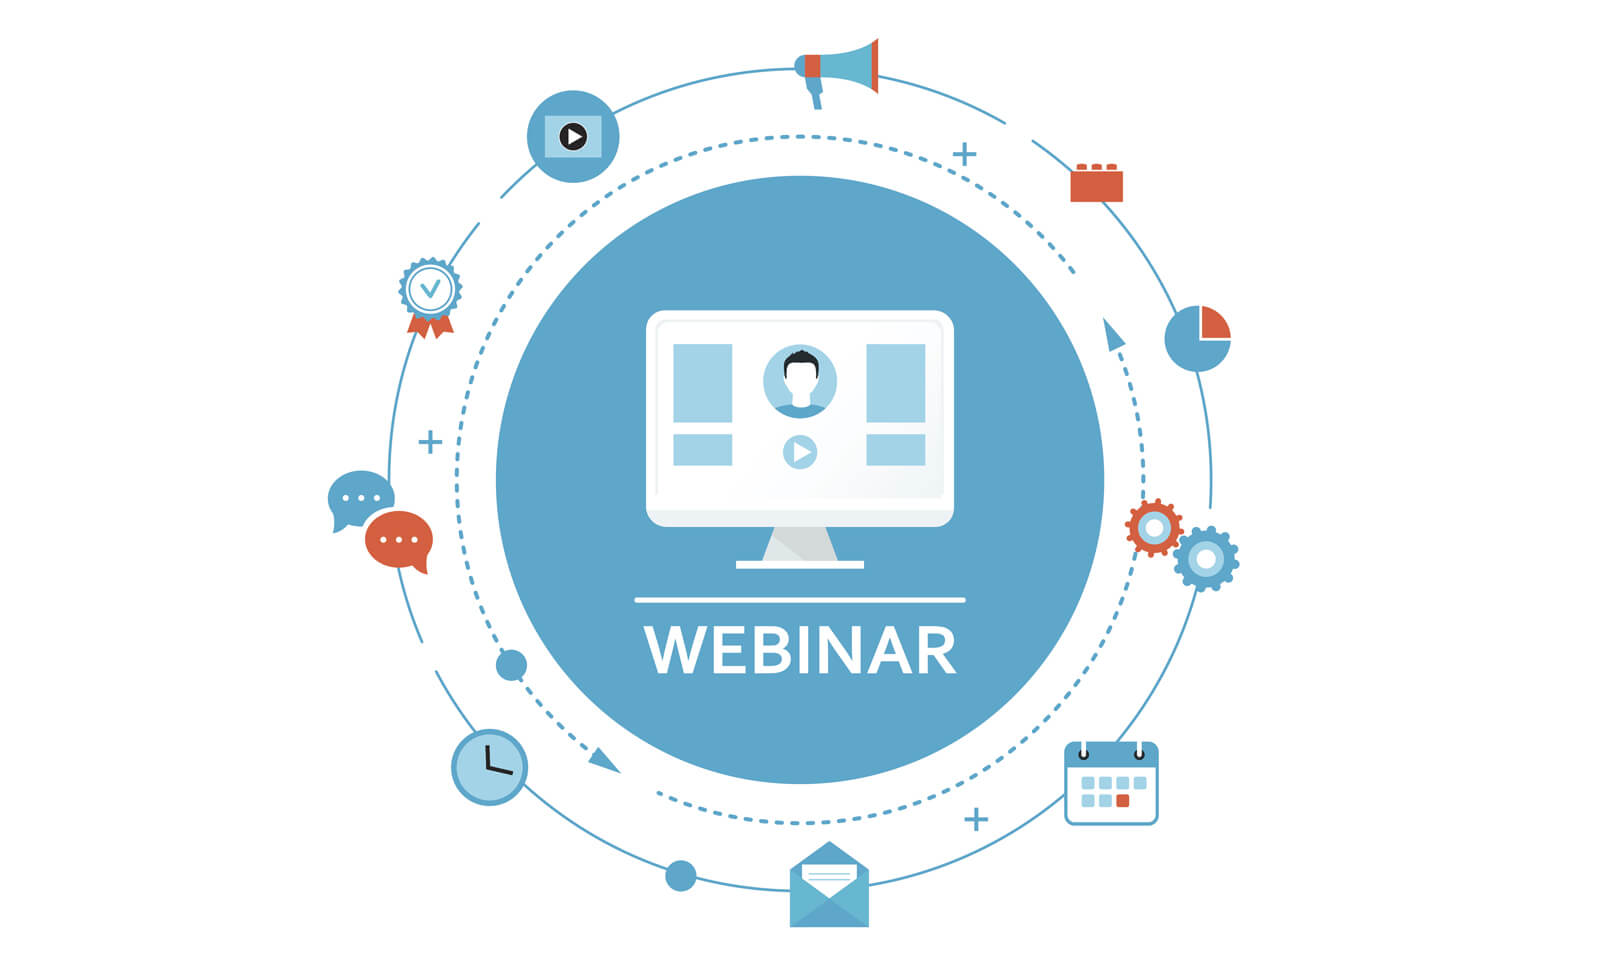 Sign Up for Our February 28 Marketing Webinar